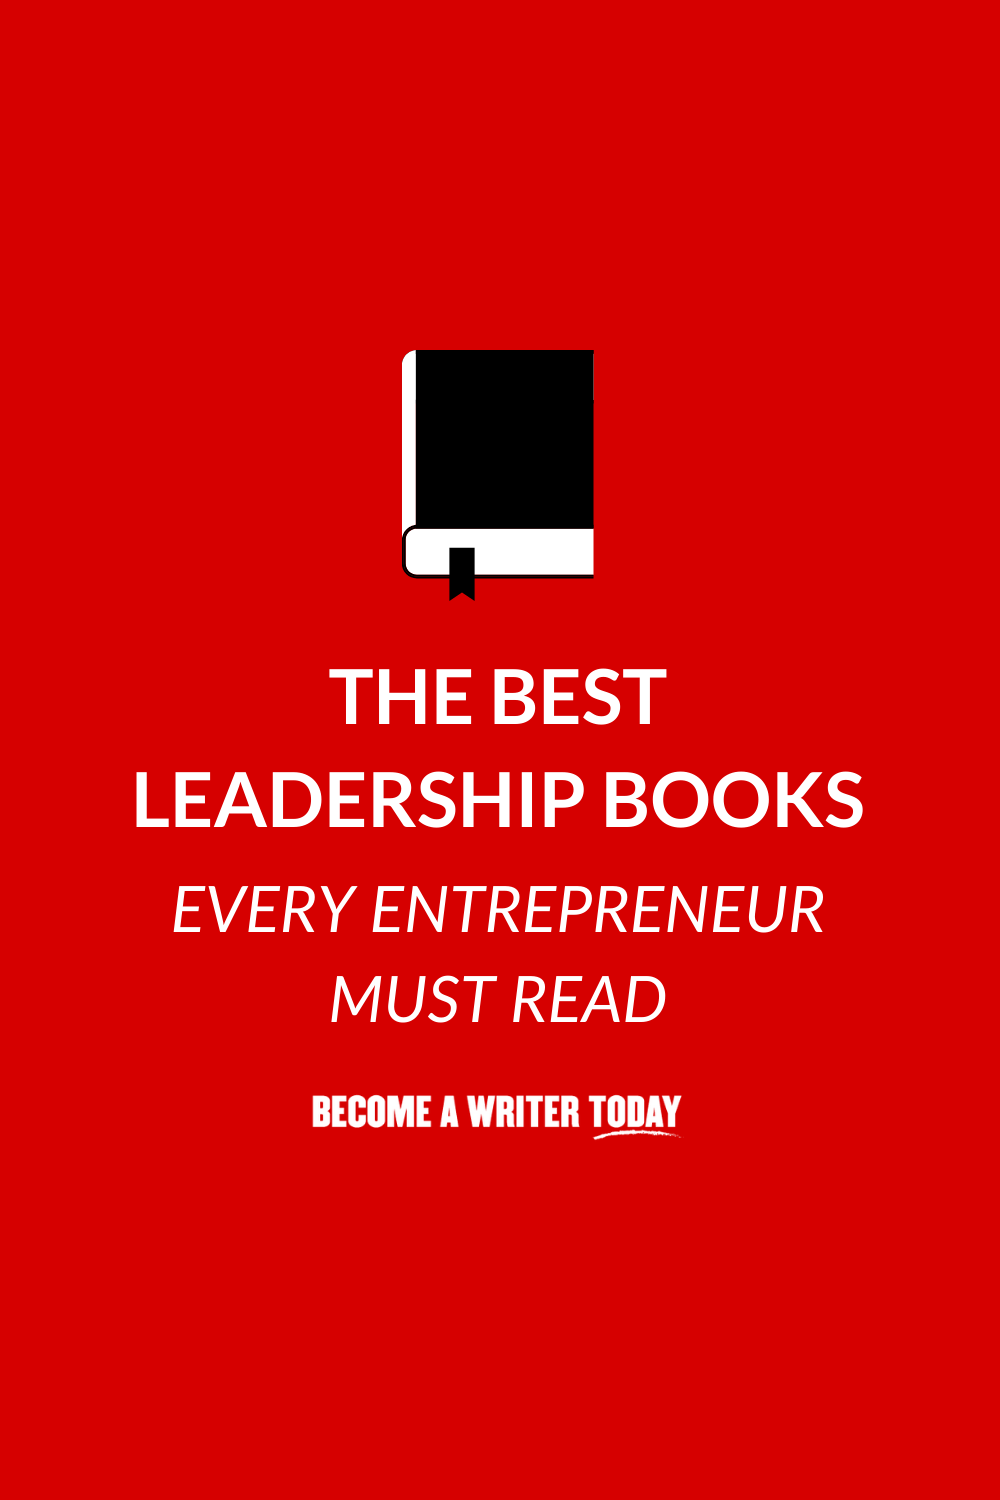 The Best Leadership Books Every Entrepreneur Must Read